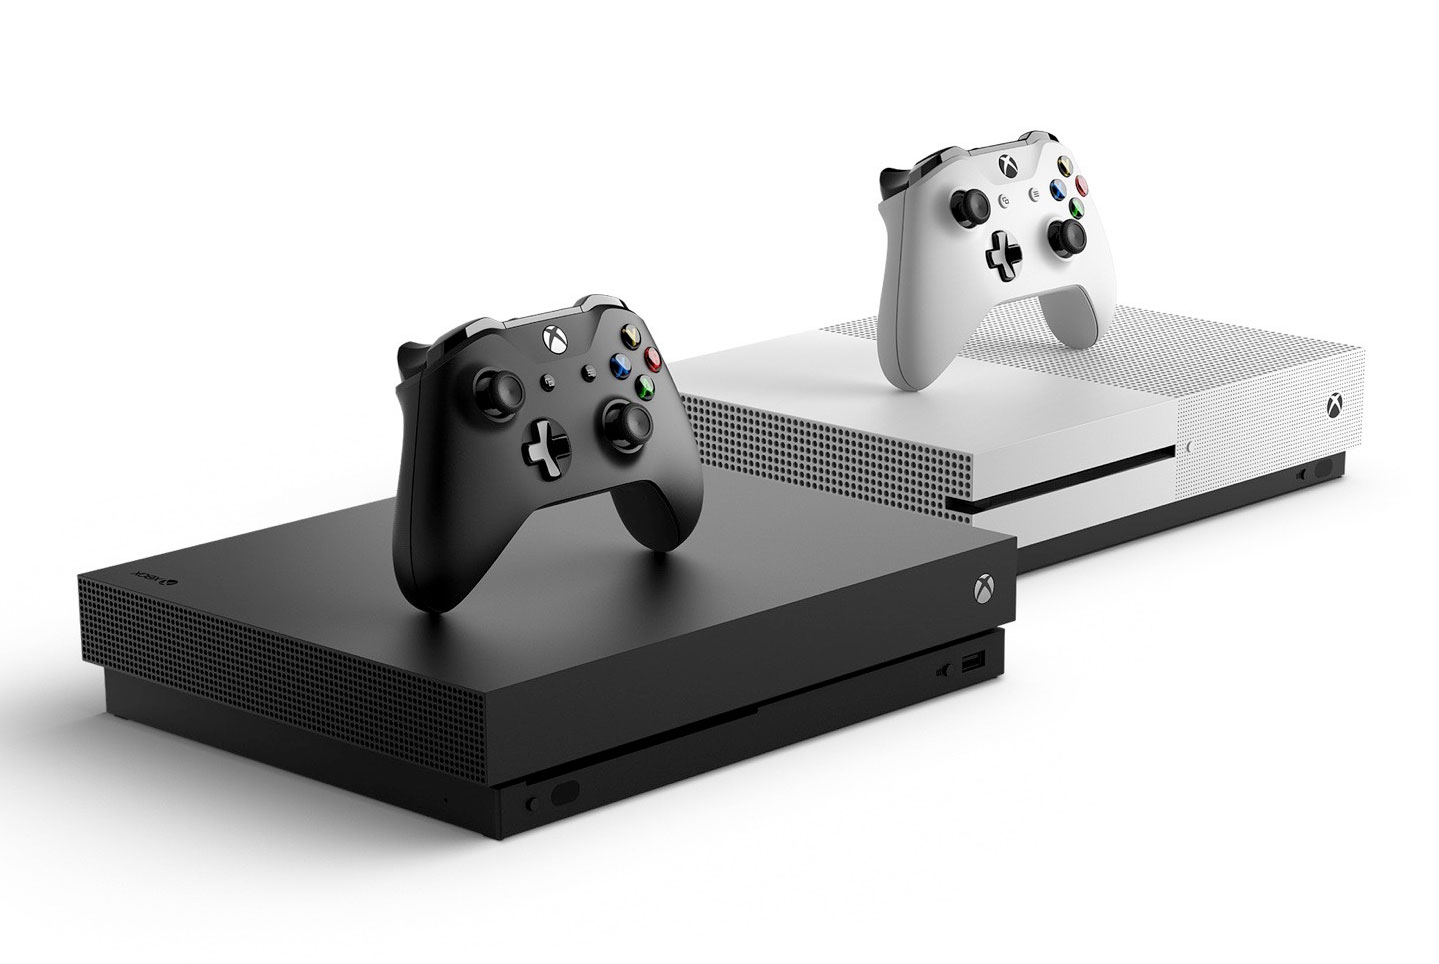 Xbox One X and Xbox One S consoles